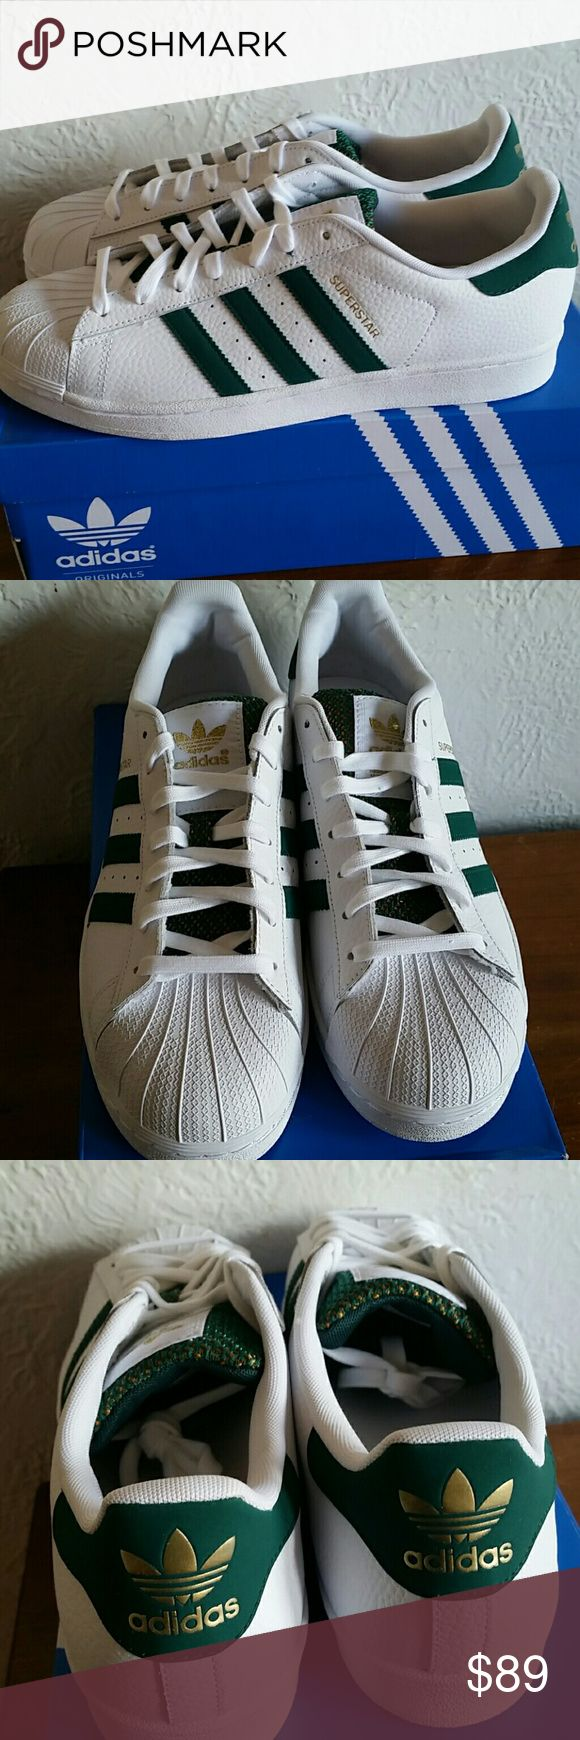 Nwt mens adidas superstar green size 9,5 Brand new with the tag  Size 9,5 for mens Adidas superstar green and gold  Price is firm Hardly find adidas green and gold Adidas  Shoes Sneakers